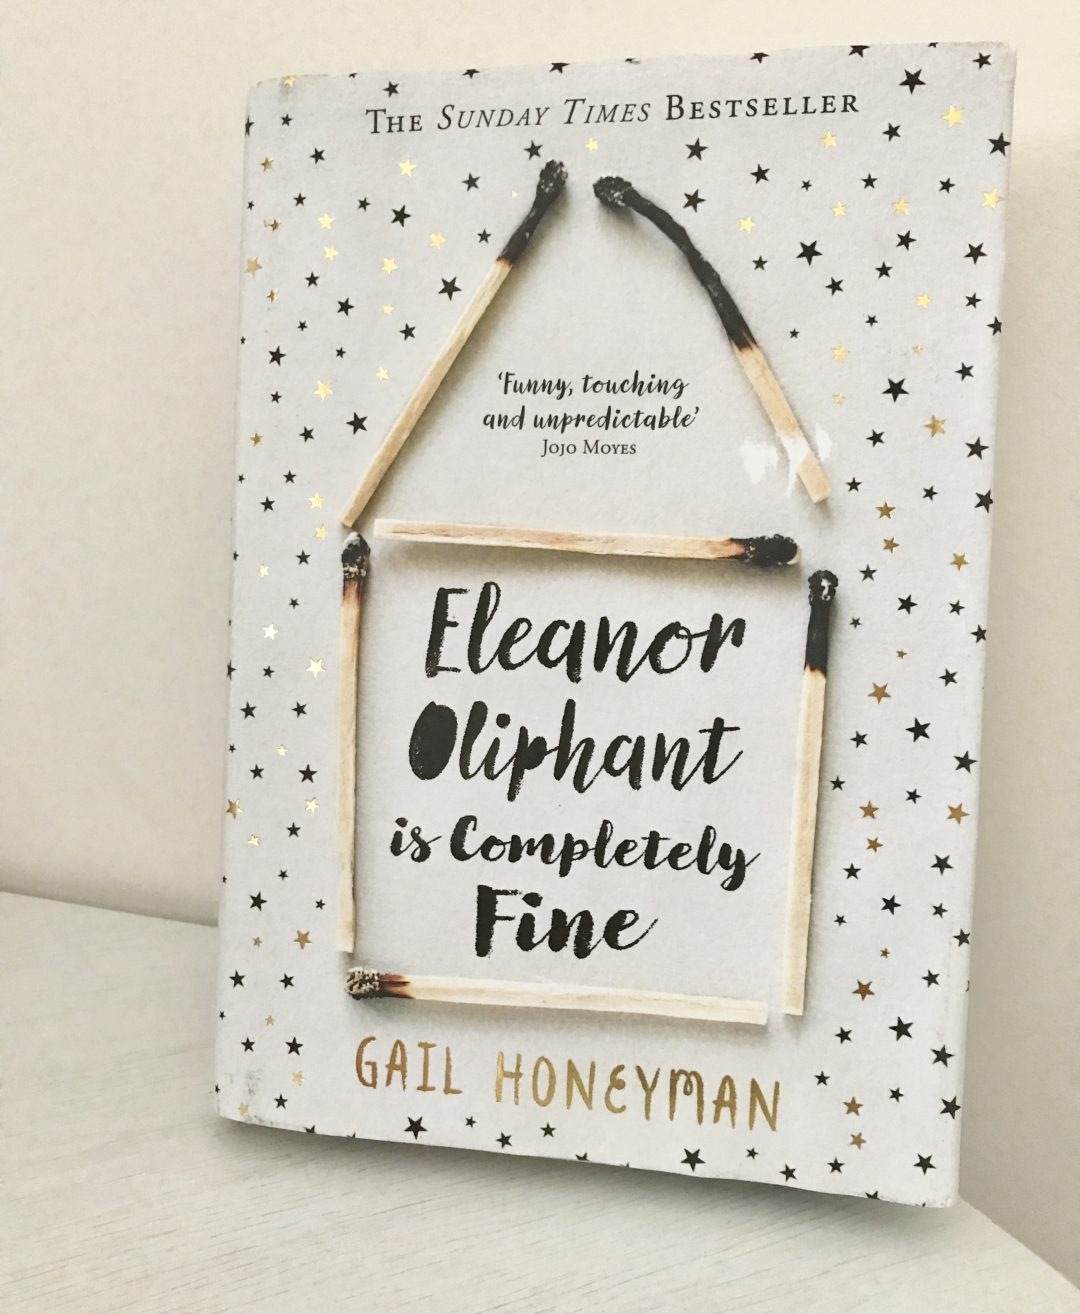 eleanore-oliphant-is-completely-fine-book-cover